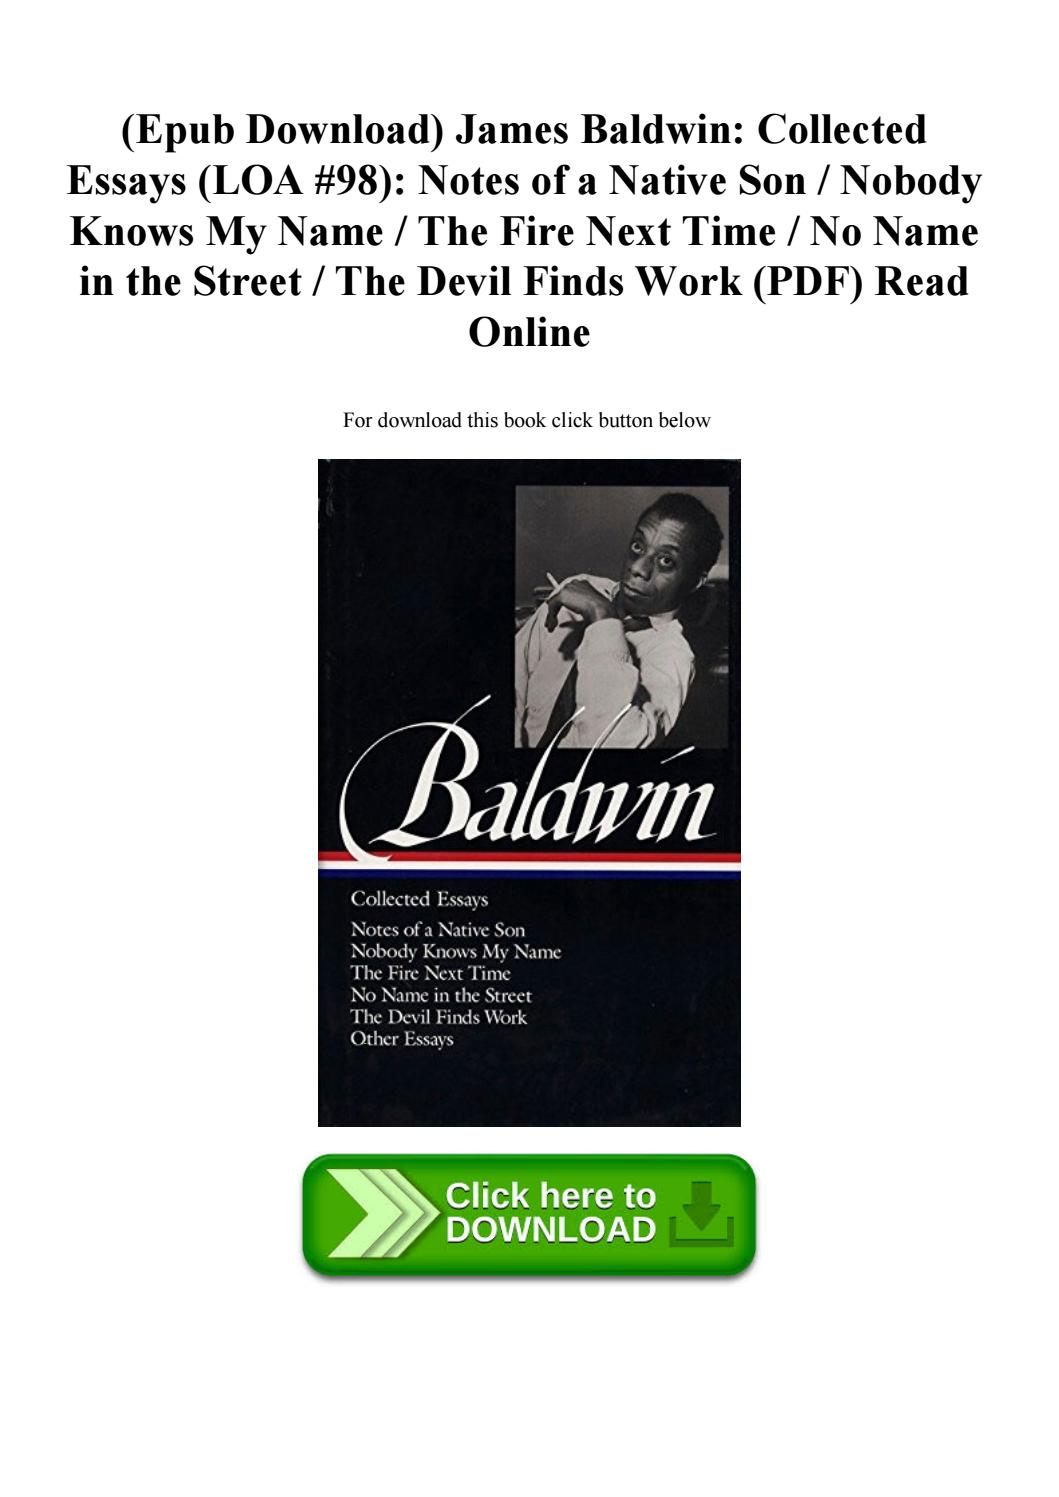 003 James Baldwin Collected Essays Essay Example Page 1 Wondrous Table Of Contents Ebook Google Books Full